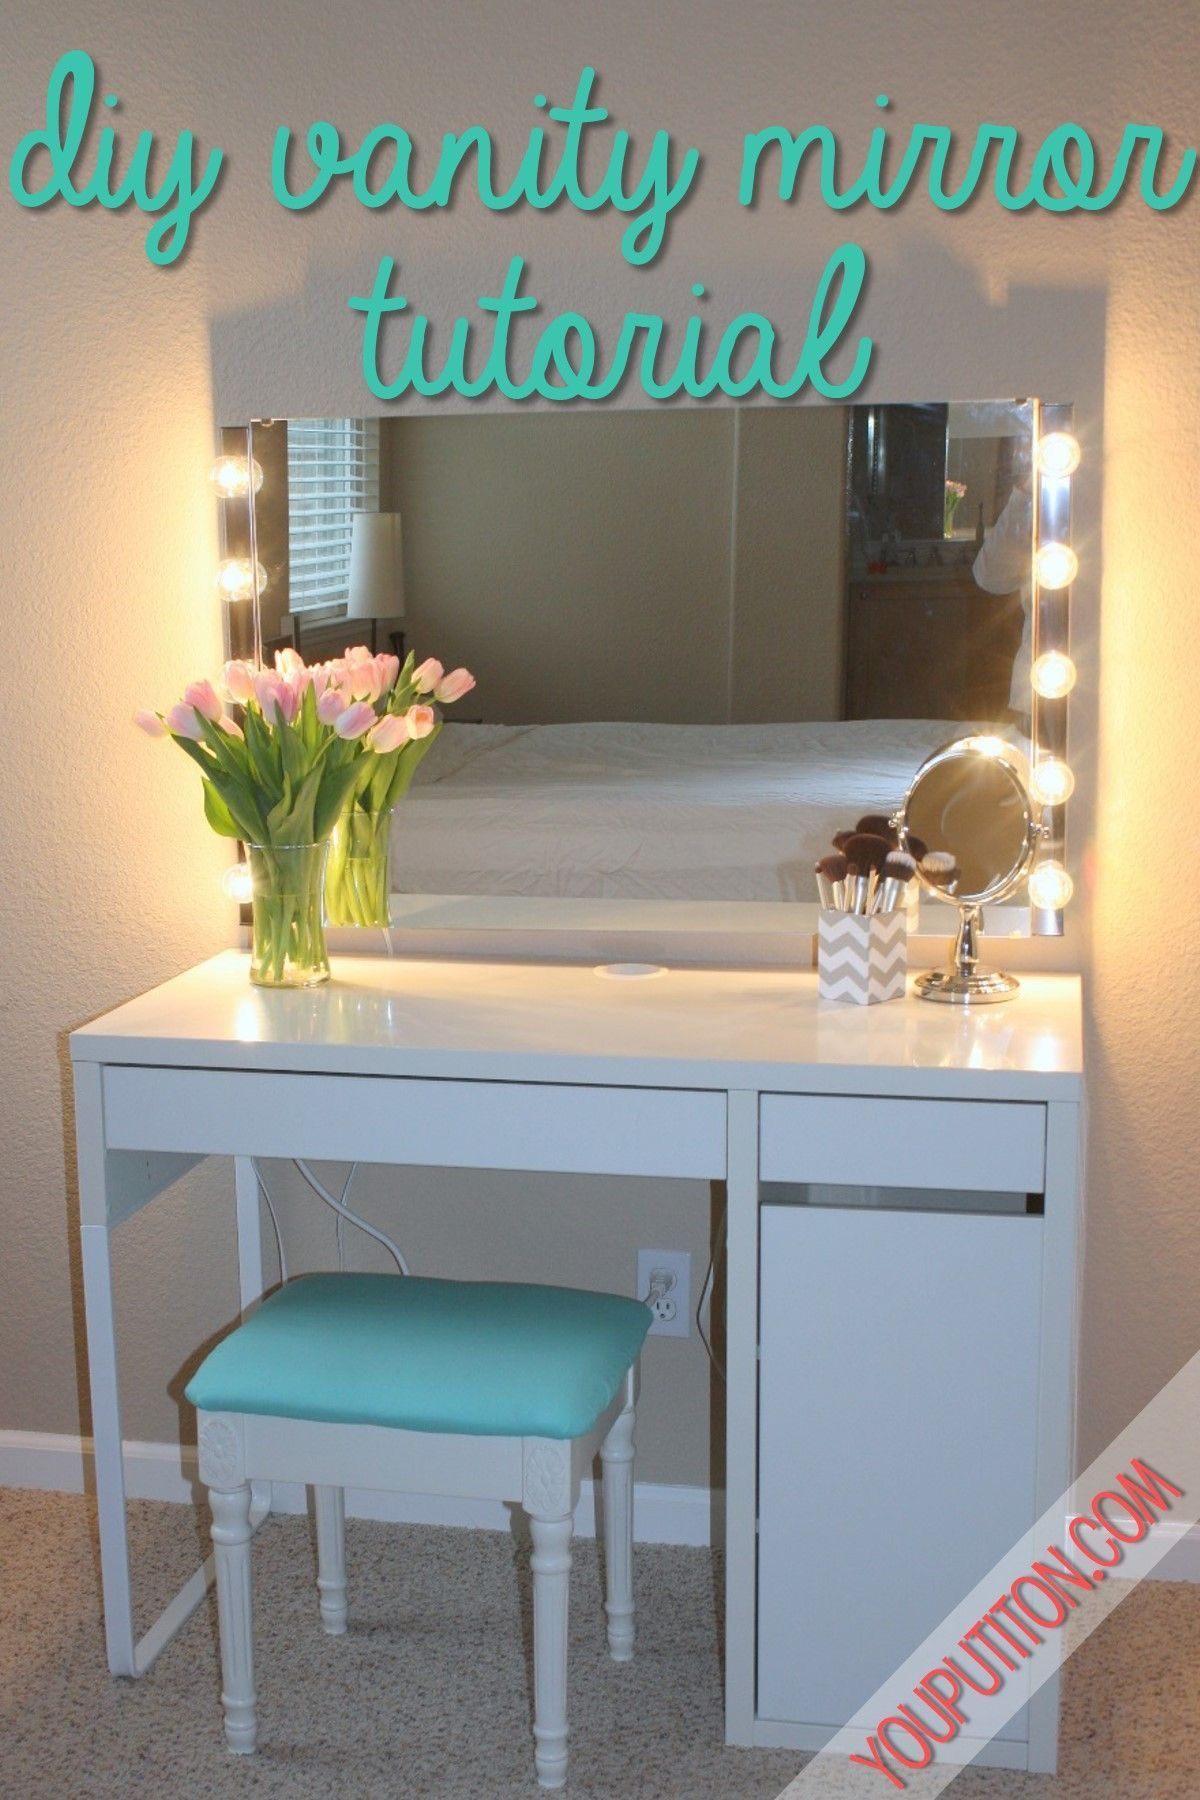 Diy Vanity Mirror Tutorial Seems A Tad Complicated But So